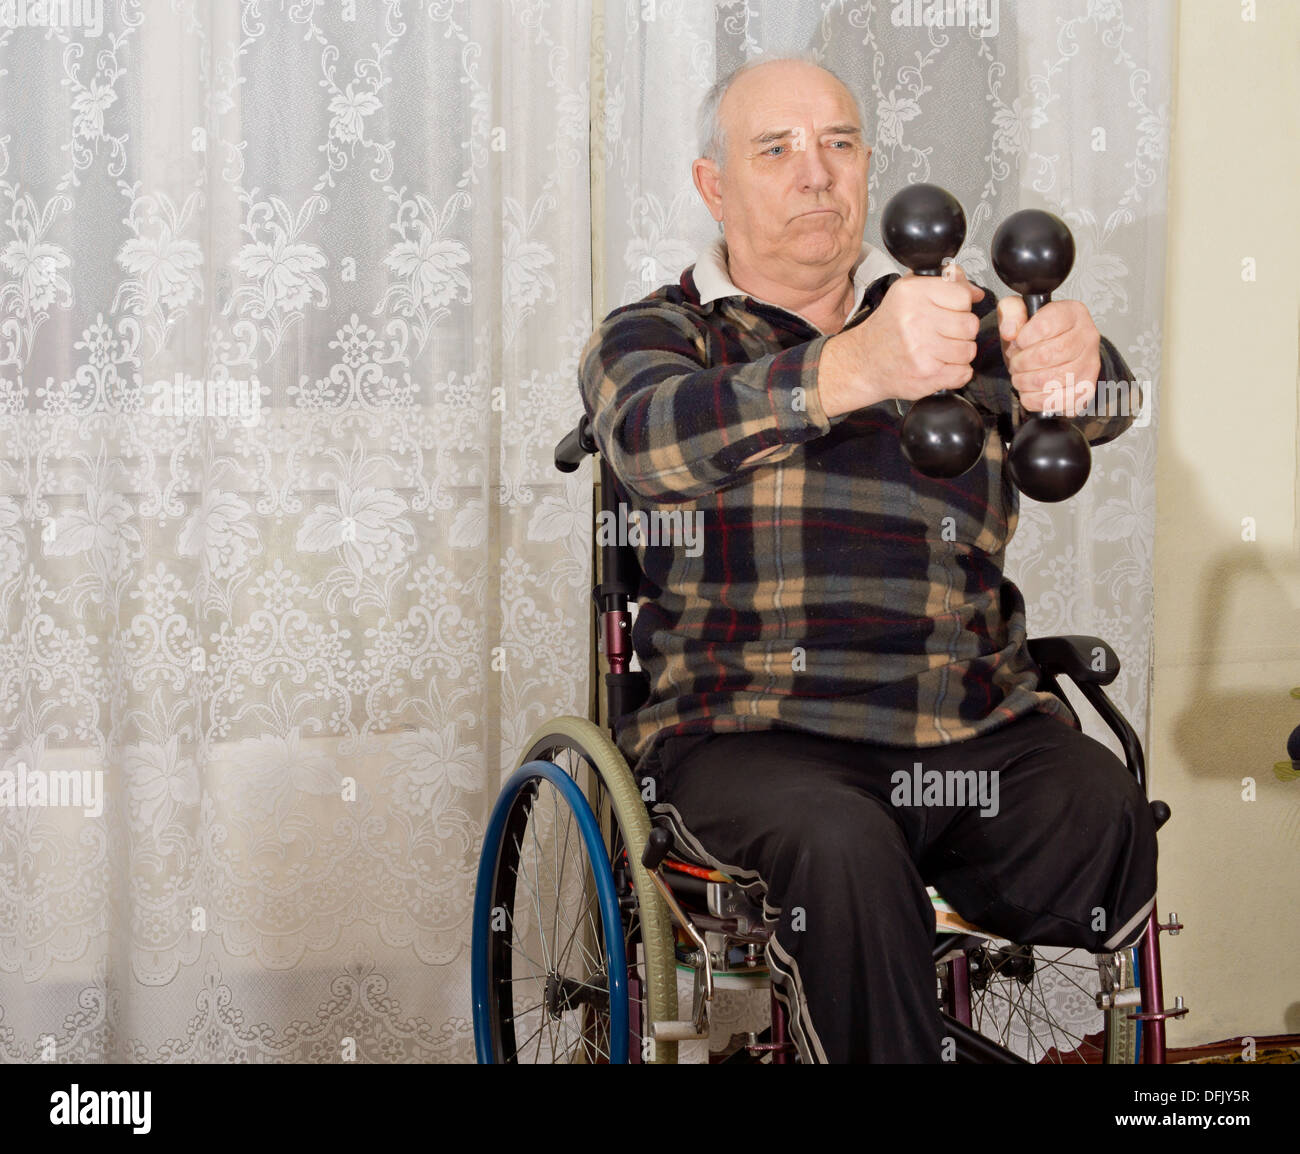 Senior handicapped man exercising with a pair of dumbbells to strengthen his arms while sitting in a wheelchair - Stock Image